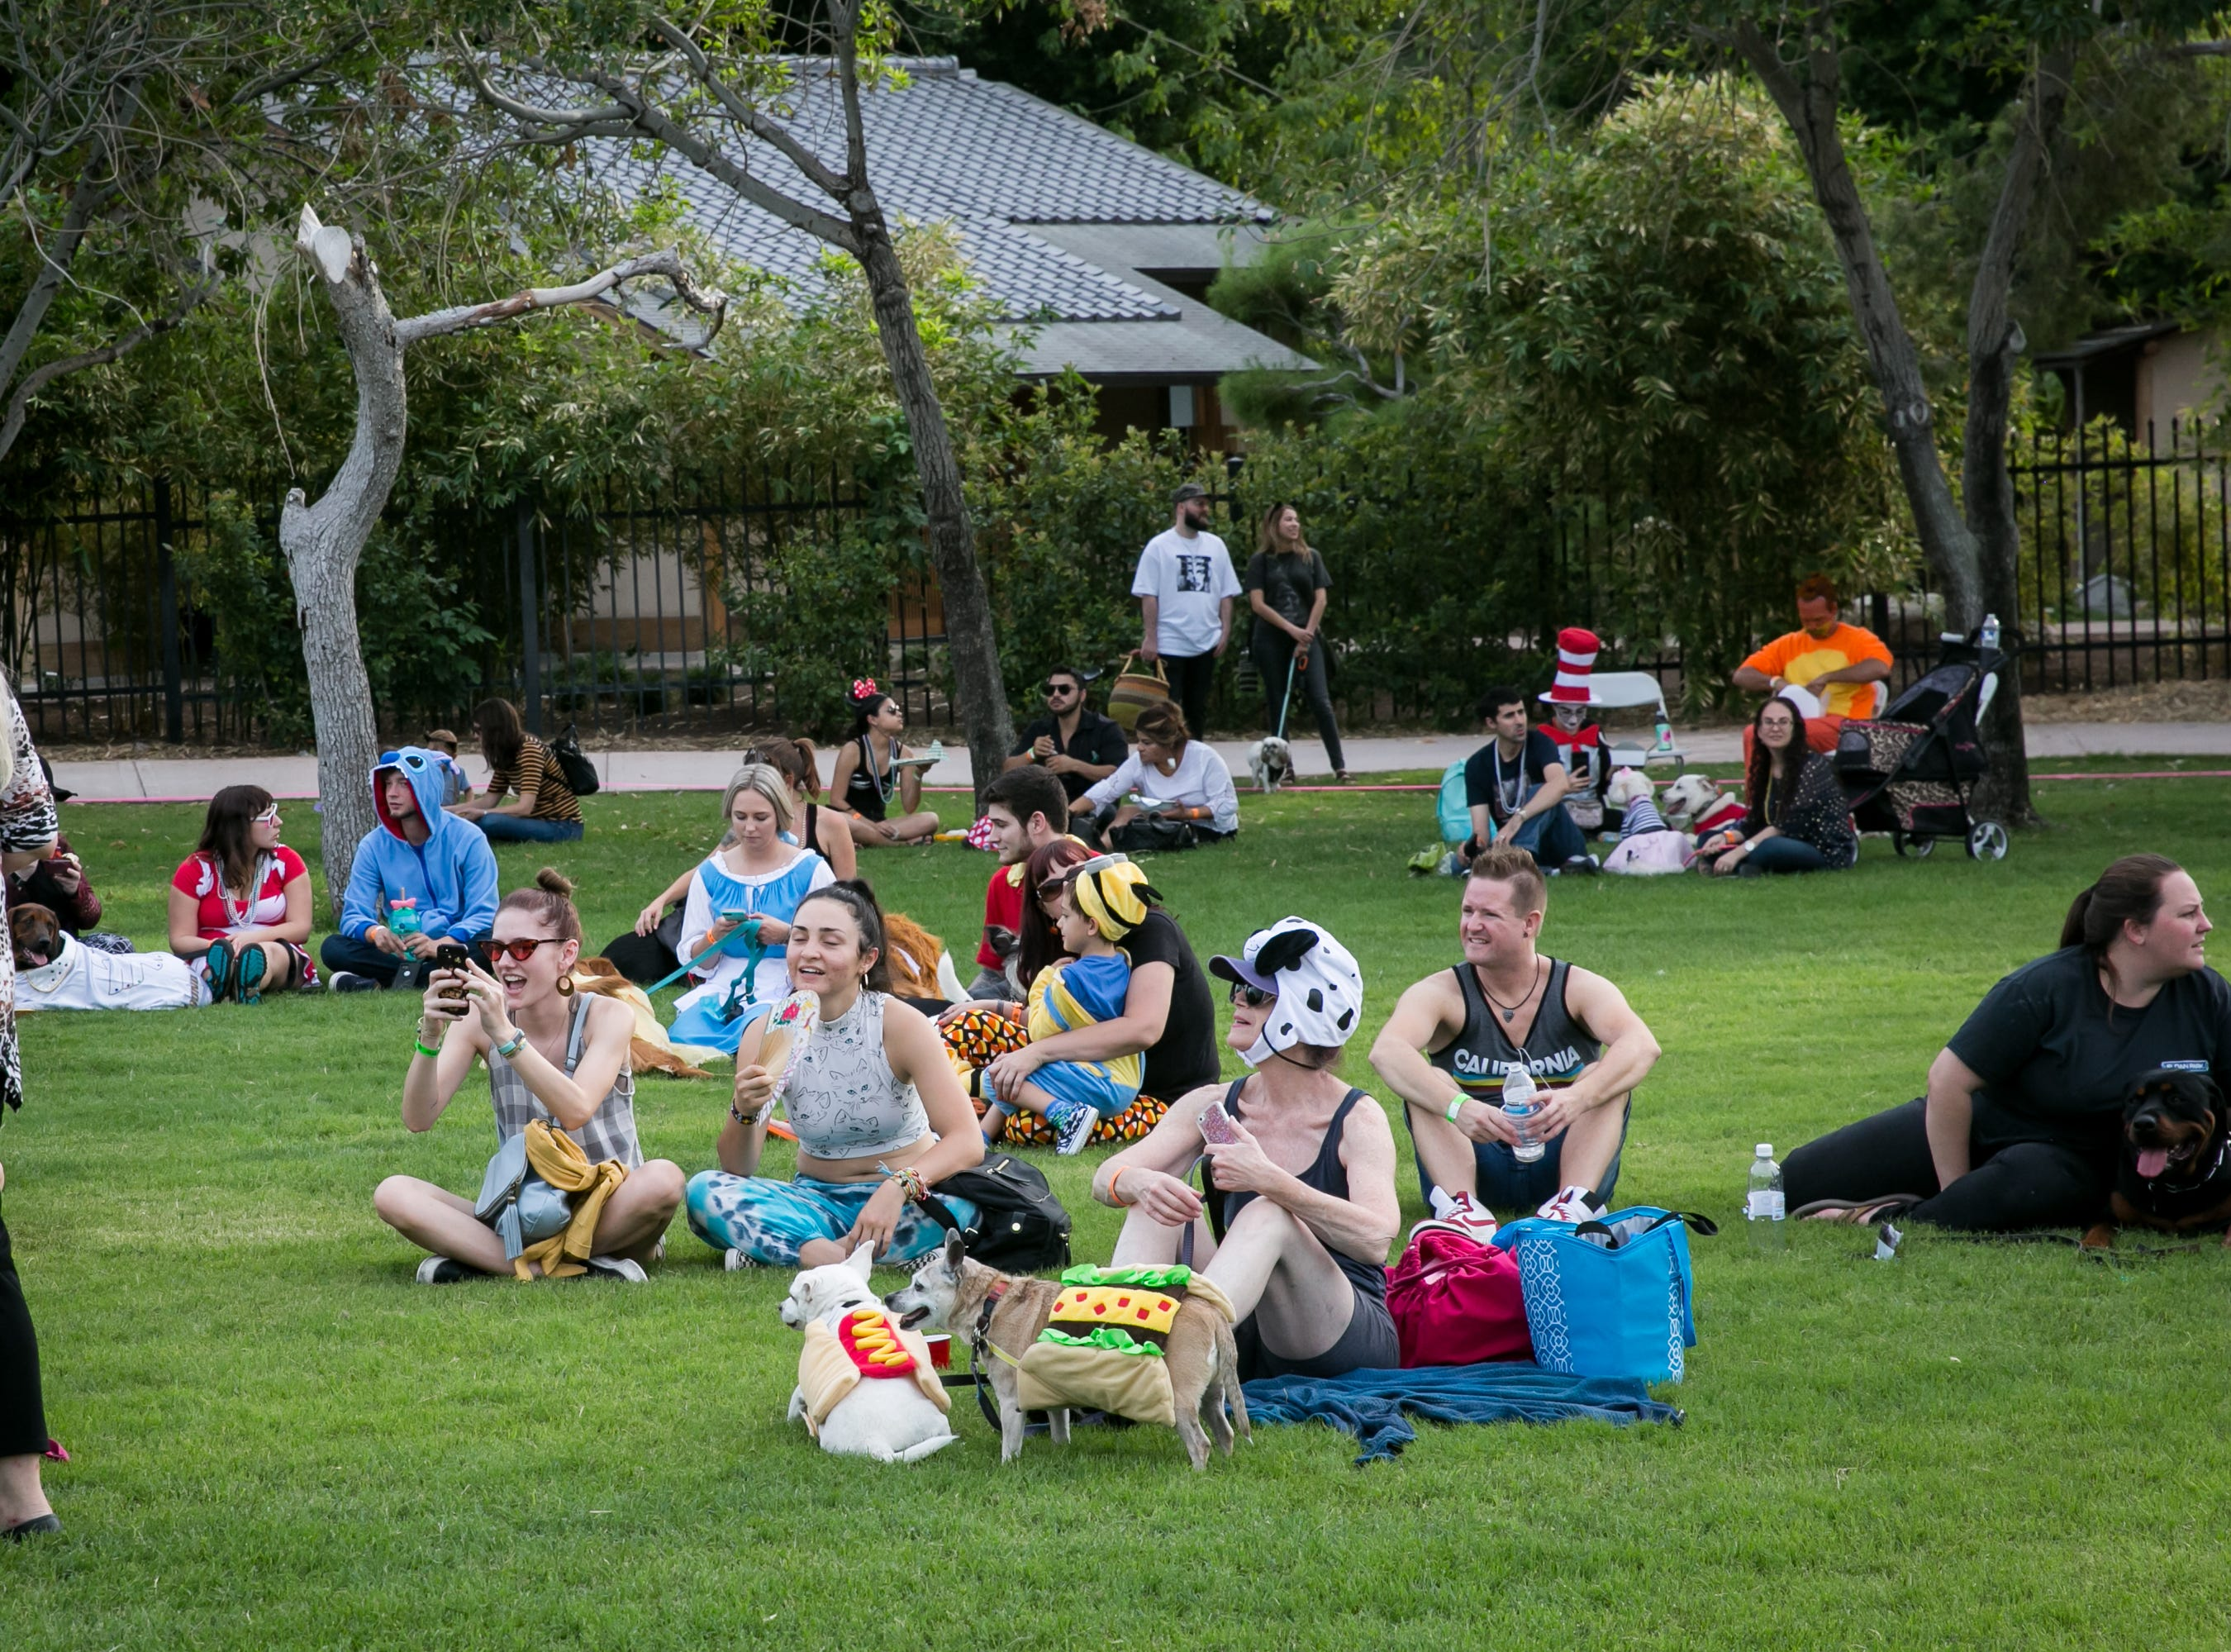 The grass was a great hang out spot during Howl-o-Ween at Hance Park on Sunday, October 28, 2018.